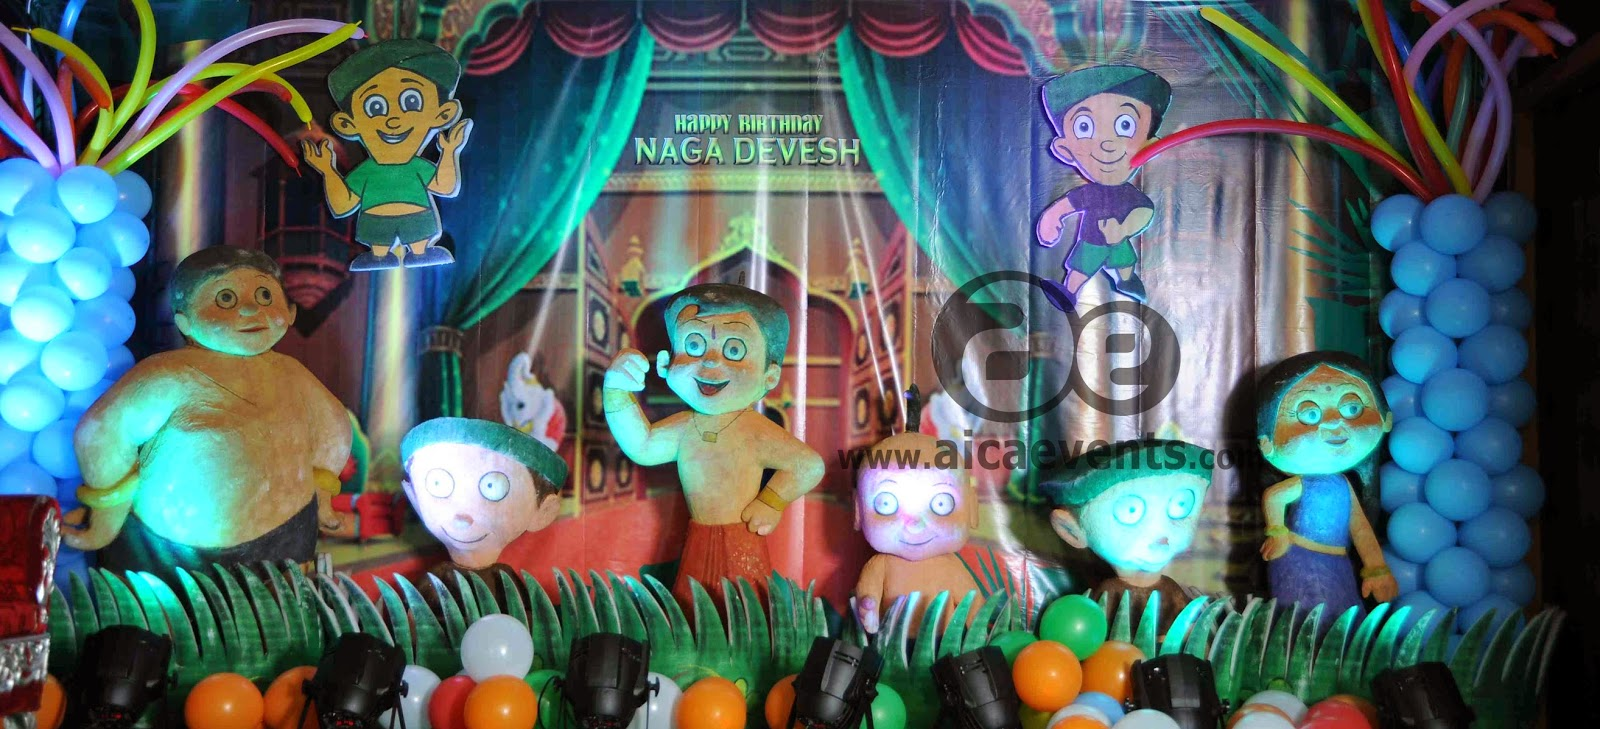 Aicaevents chhota bheem theme decorations for 1st birthday stage decoration